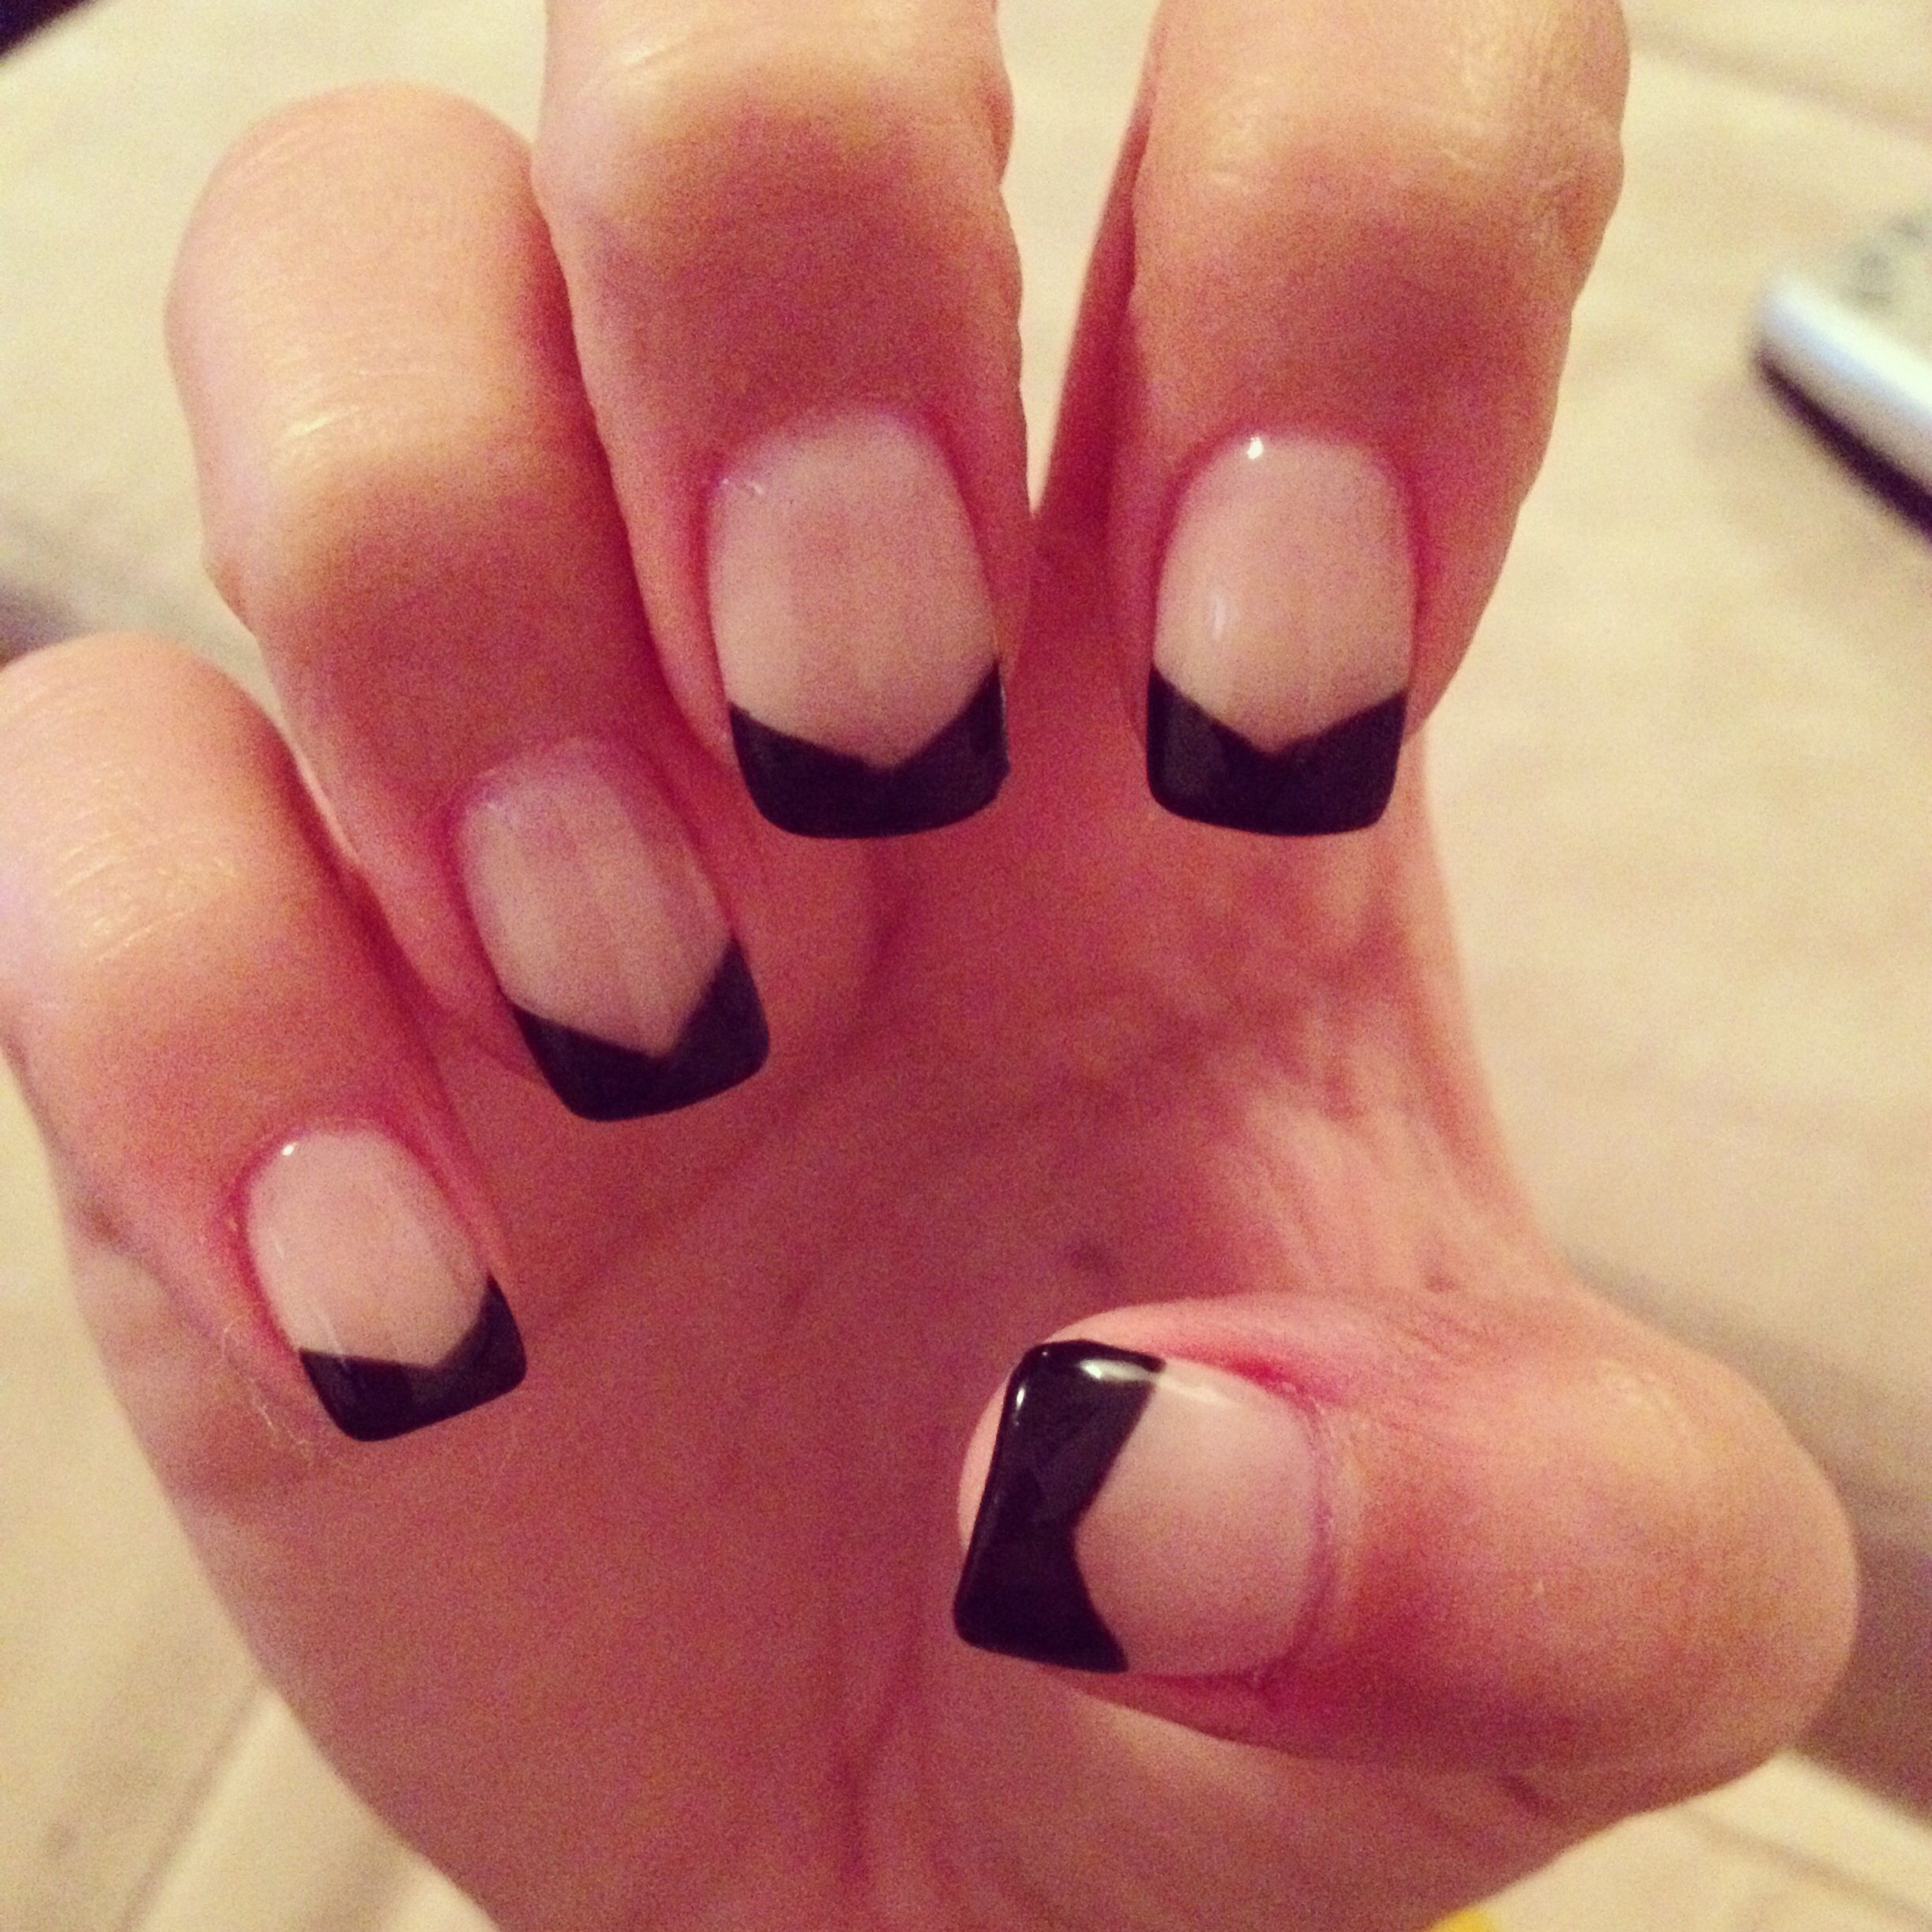 Edgy black French tip | Hair/makeup/nails | Pinterest | Nails games ...